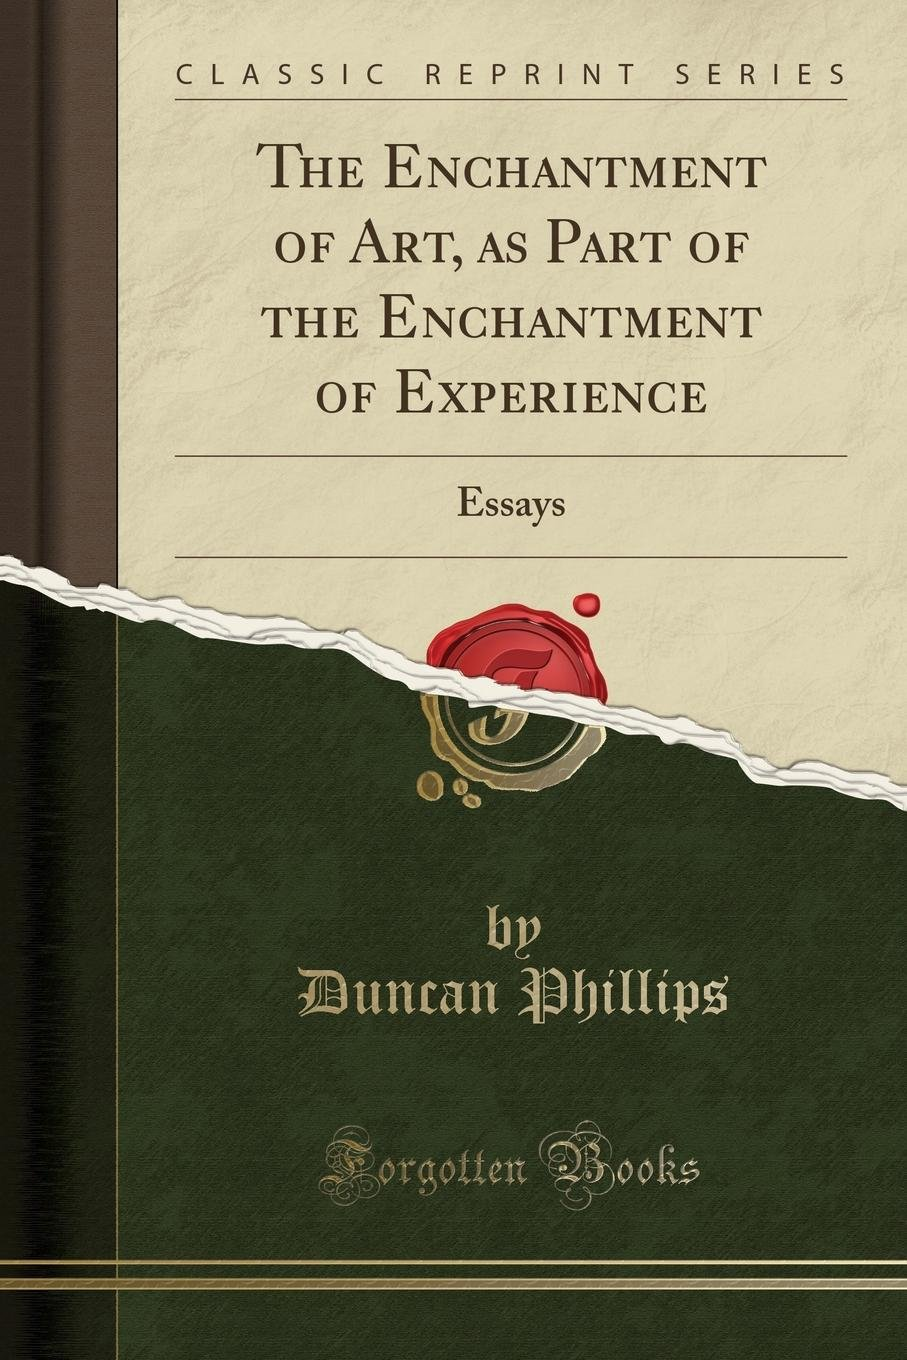 The Enchantment of Art, as Part of the Enchantment of Experience: Essays (Classic Reprint) ebook